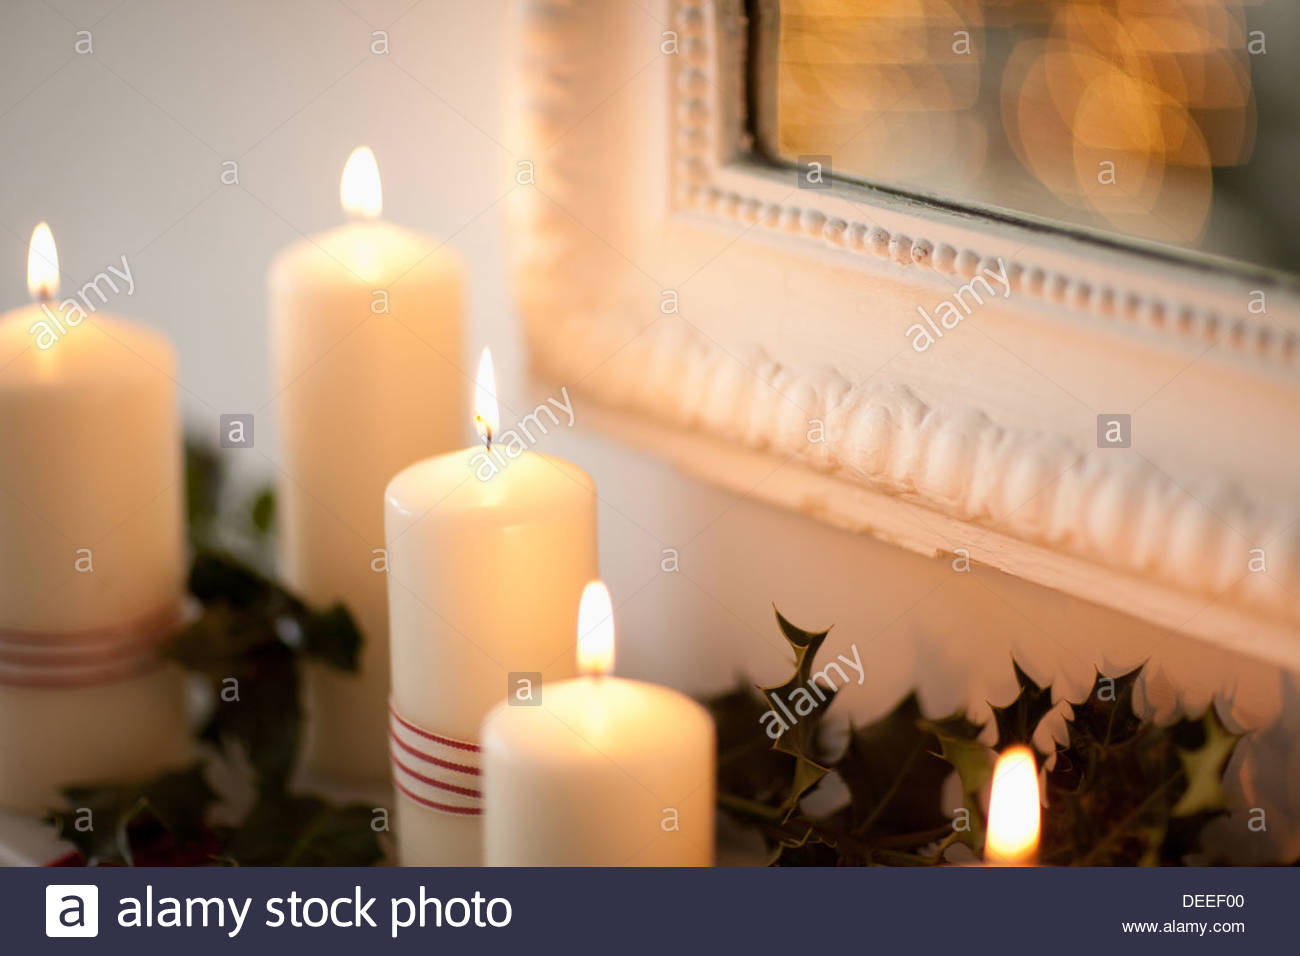 Candles lit on mantelpiece - Stock Image